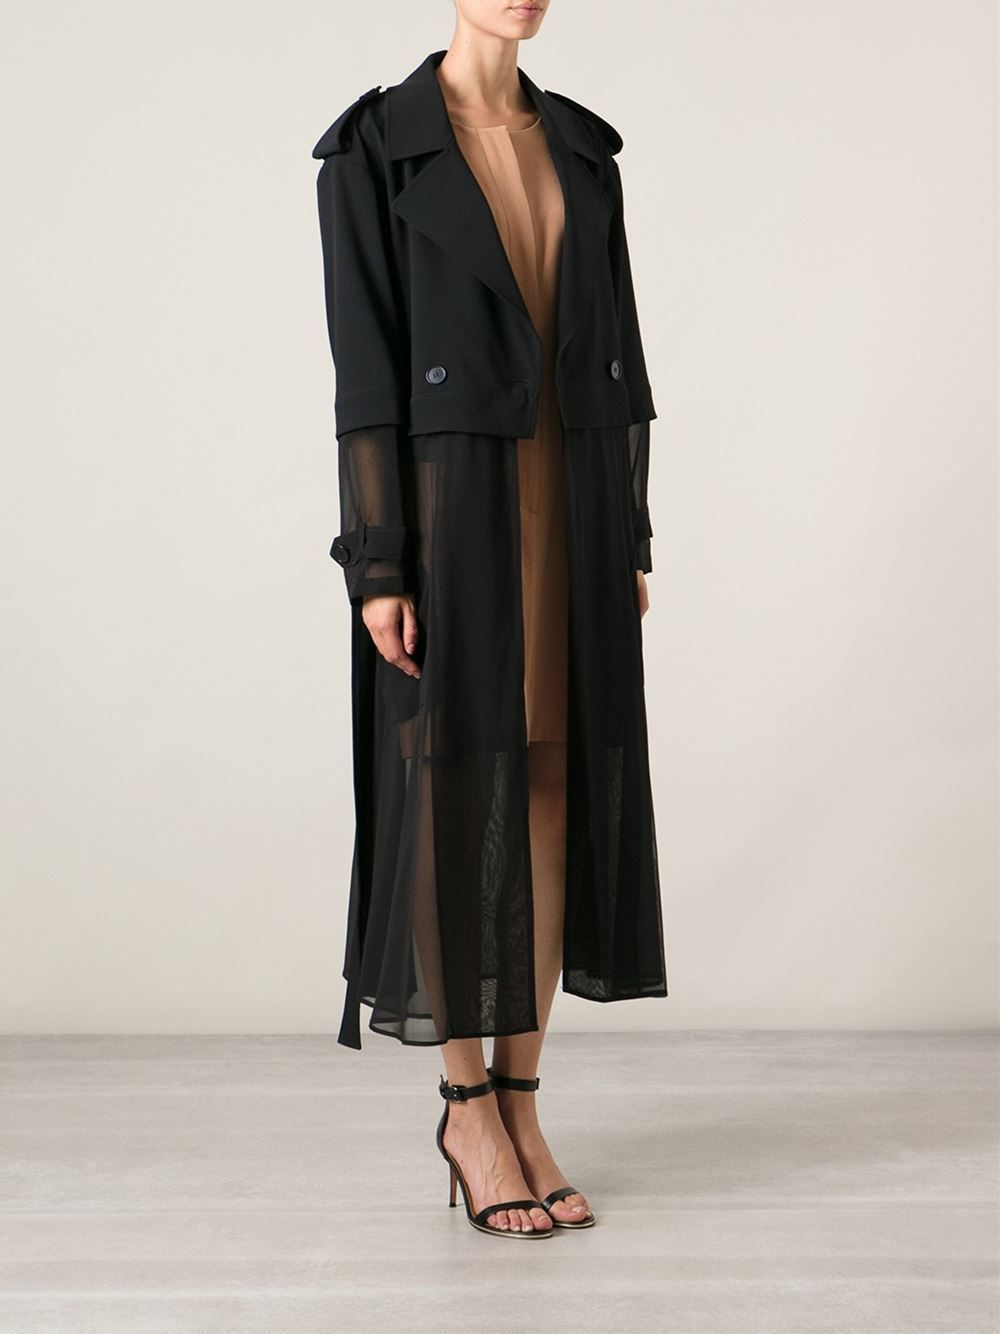 33aa20339513c8 Shop DKNY sheer long trench coat from Farfetch | Fashion | Trench ...